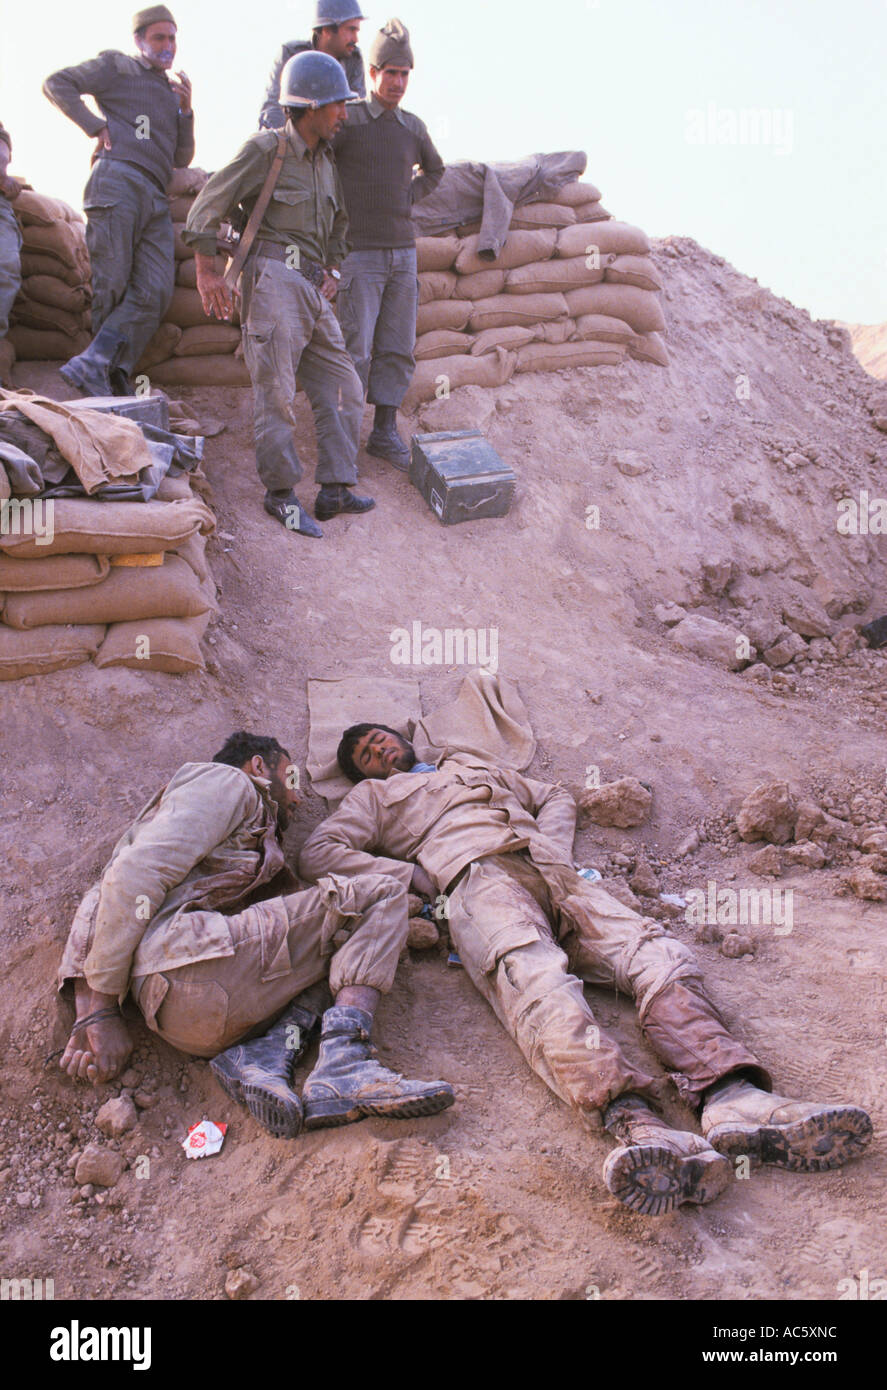 expense of the iran iraq war According to the economy costs of the iraq war, wallsten & kosec says that the cost of the conflict in iraq war is an unbelievable amount the truly costs could be $428 billion dollars the truly costs could be $428 billion dollars.